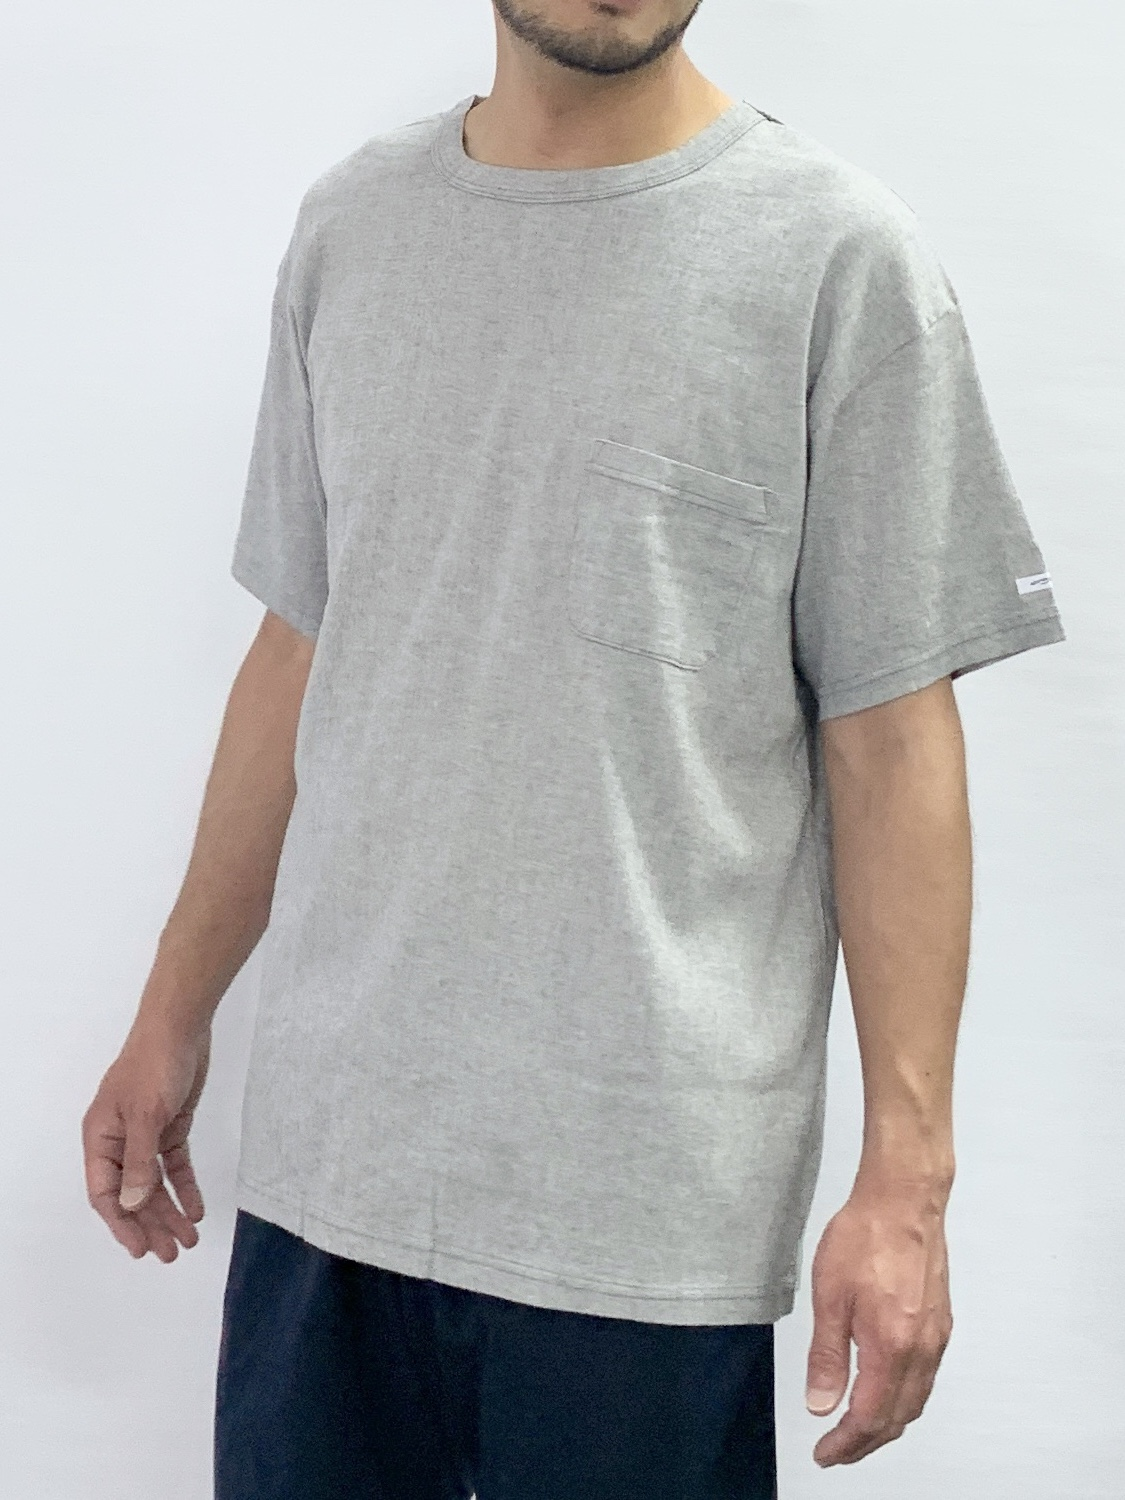 CREW NECK SHORT SLEEVE POCKET T-SHIRT1